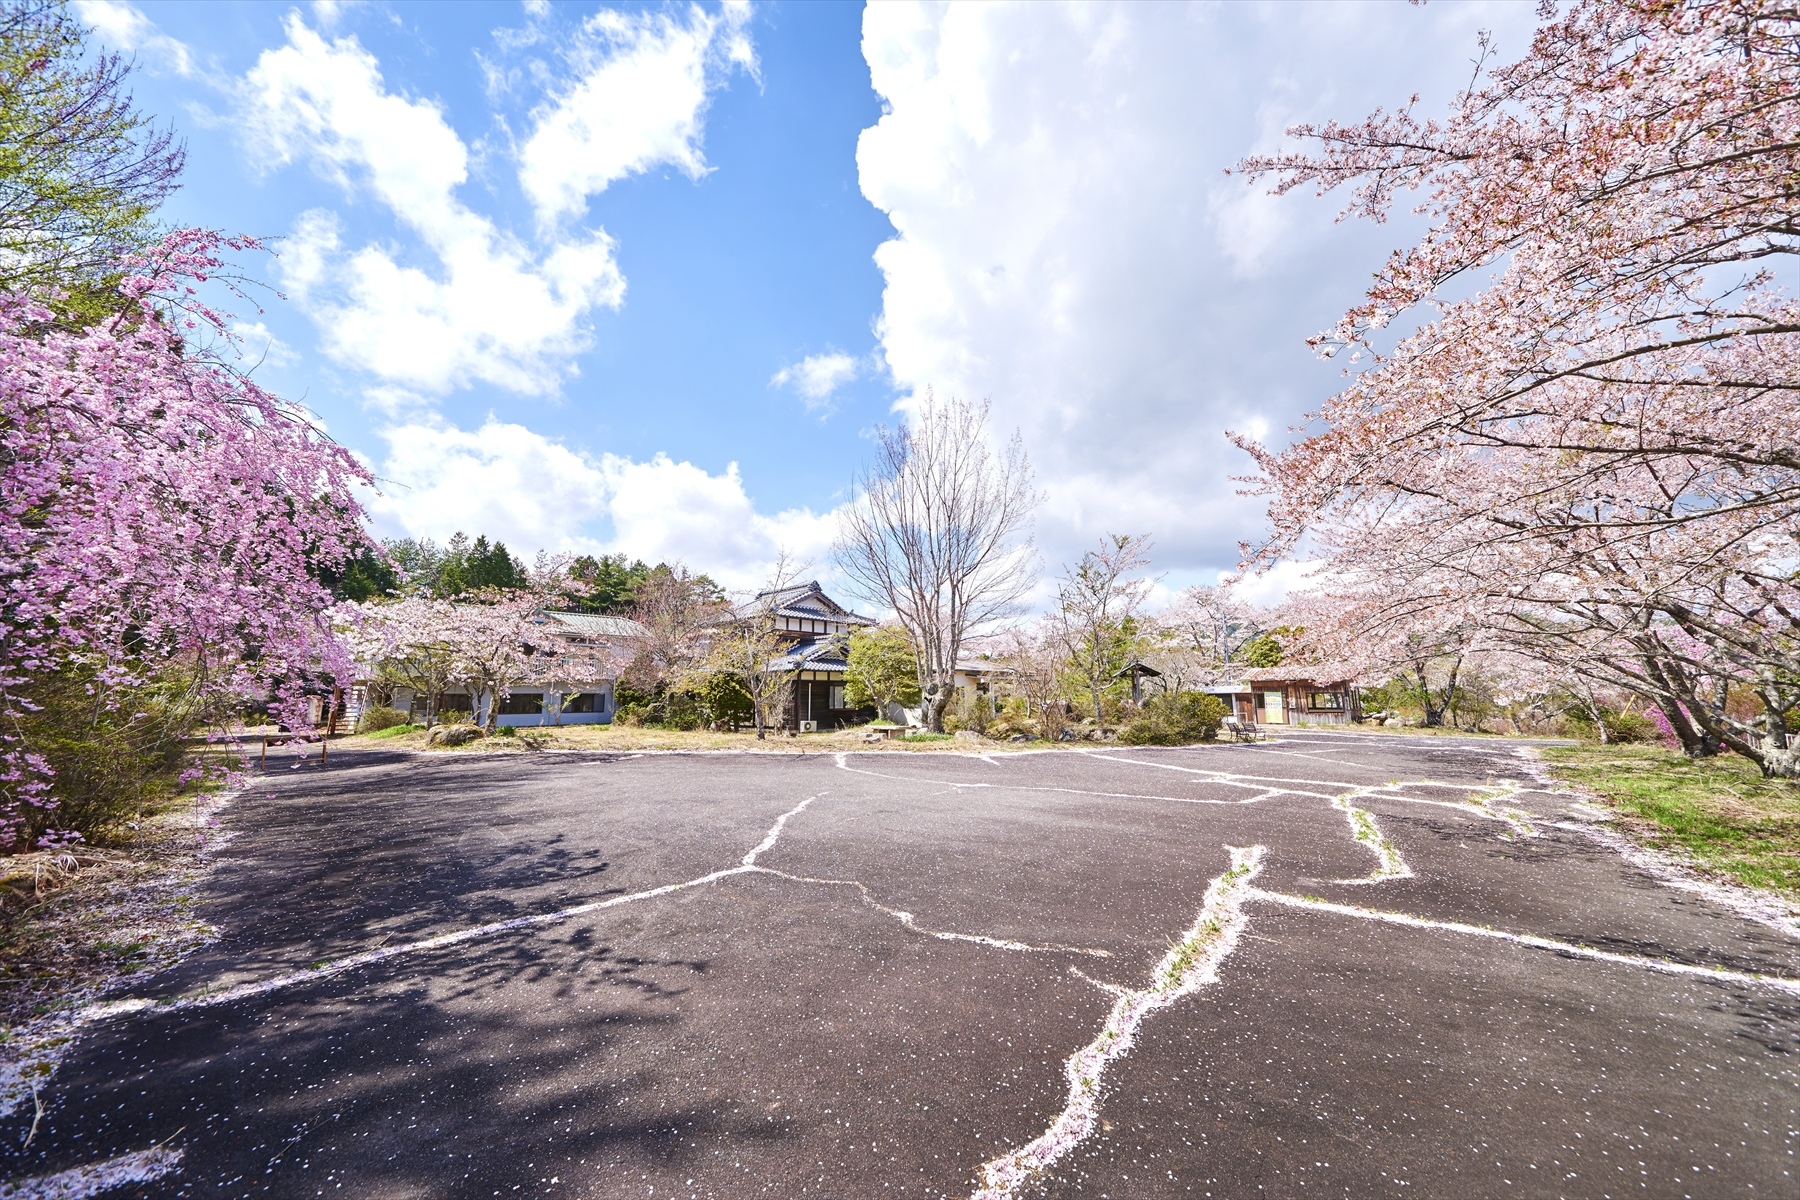 Land for Sale at Sakura no Sato Ena, Gifu Japan